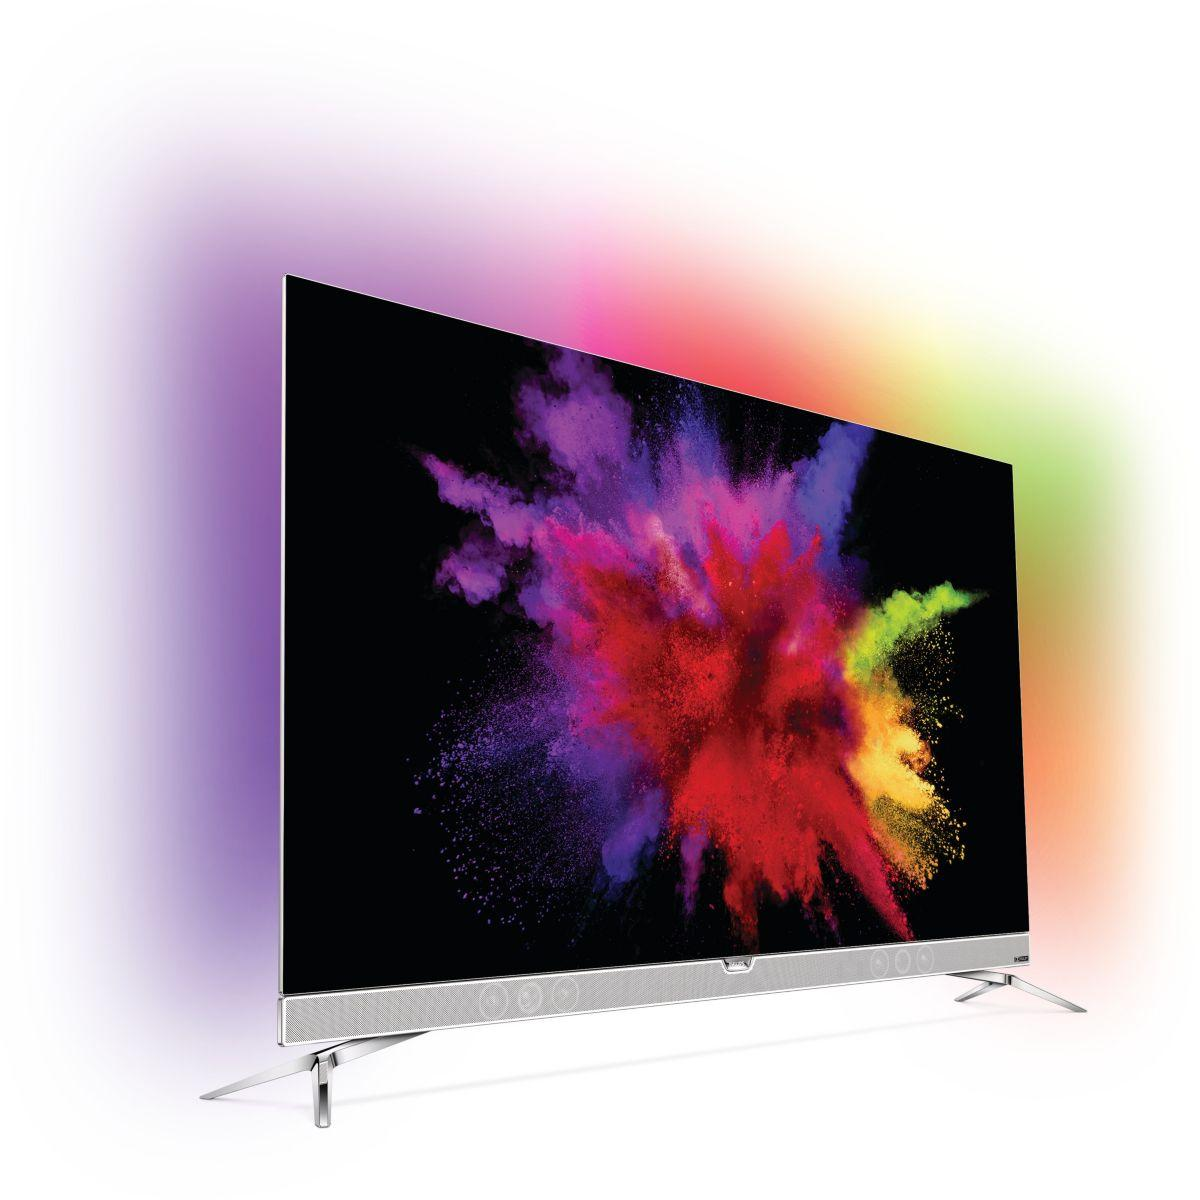 TV PHILIPS OLED 55POS901F